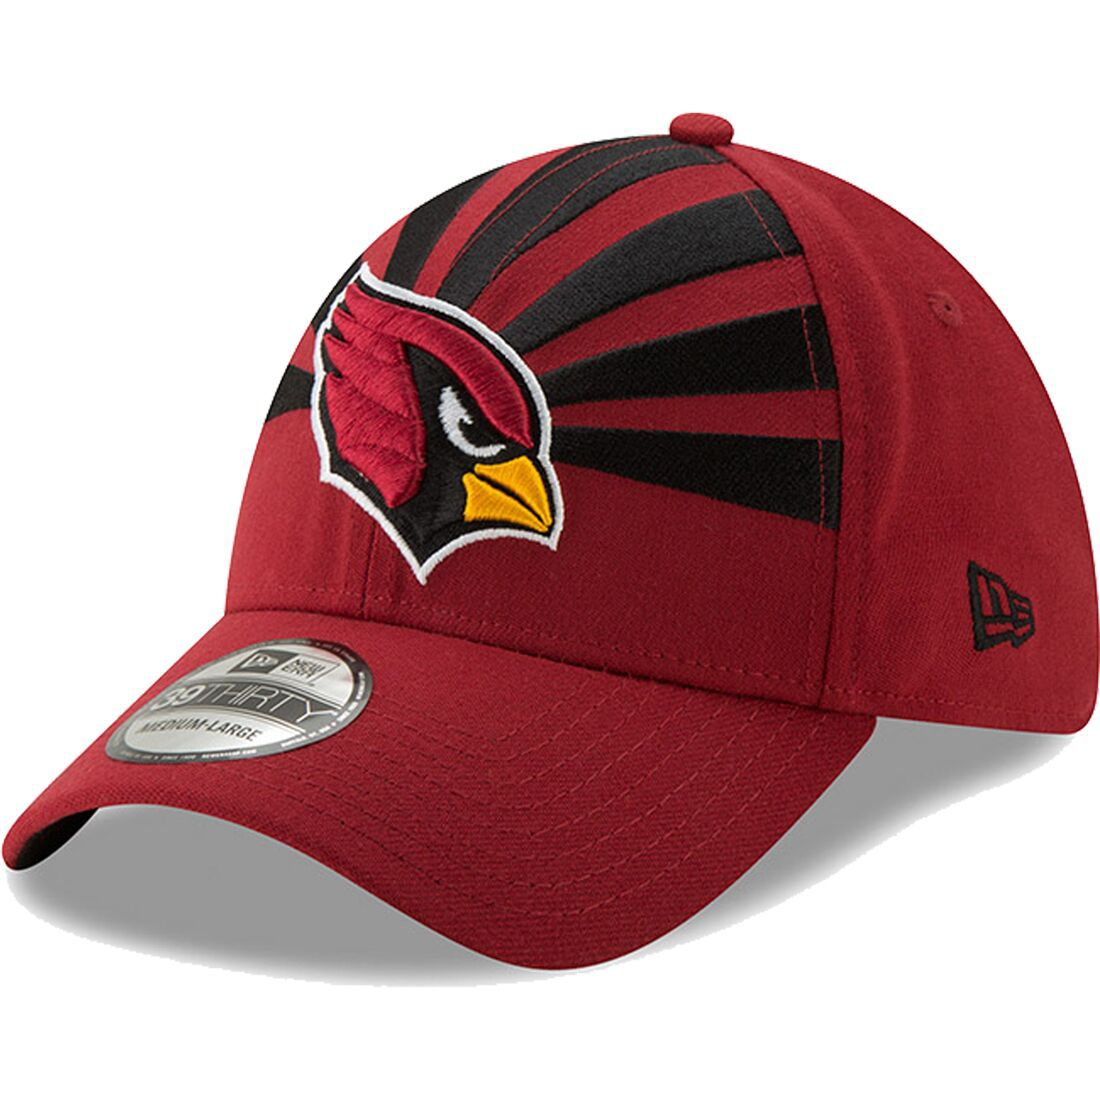 8f7f8e934f78bd Arizona Cardinals New Era 2019 On Stage Official 39THIRTY Hat for $31.99  Fanatics